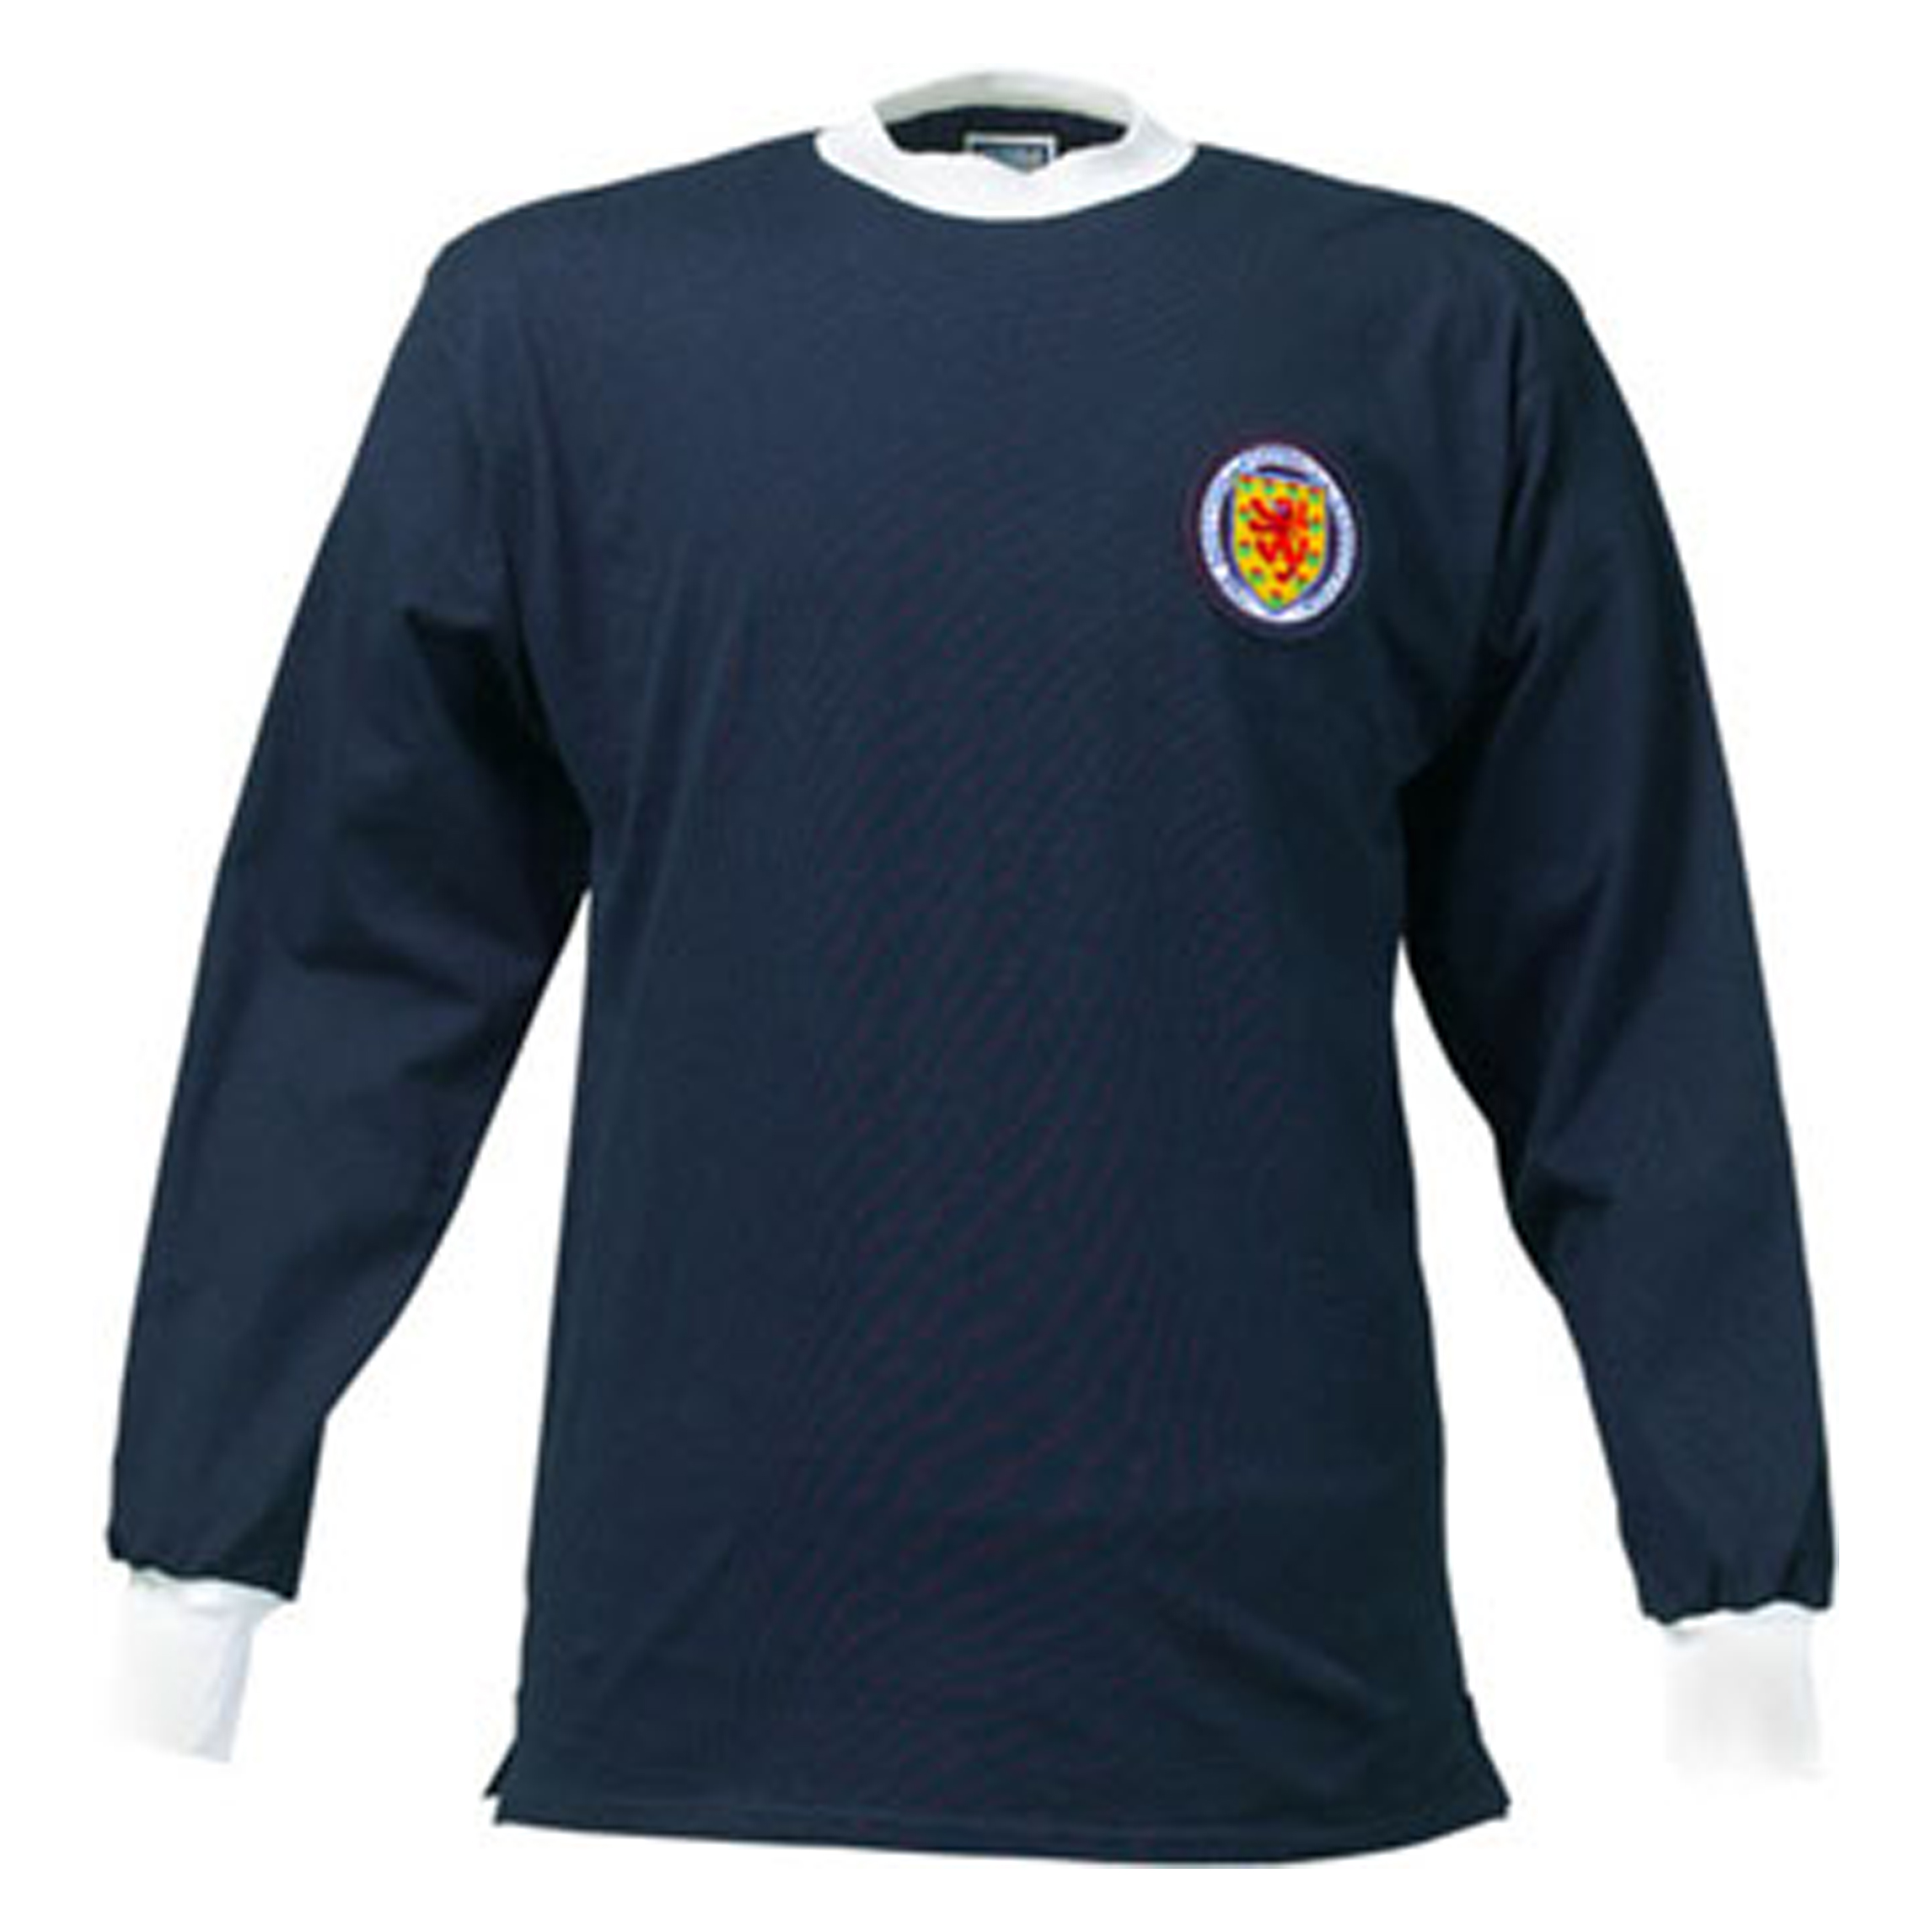 Scotland Home 1967 Retro Shirt